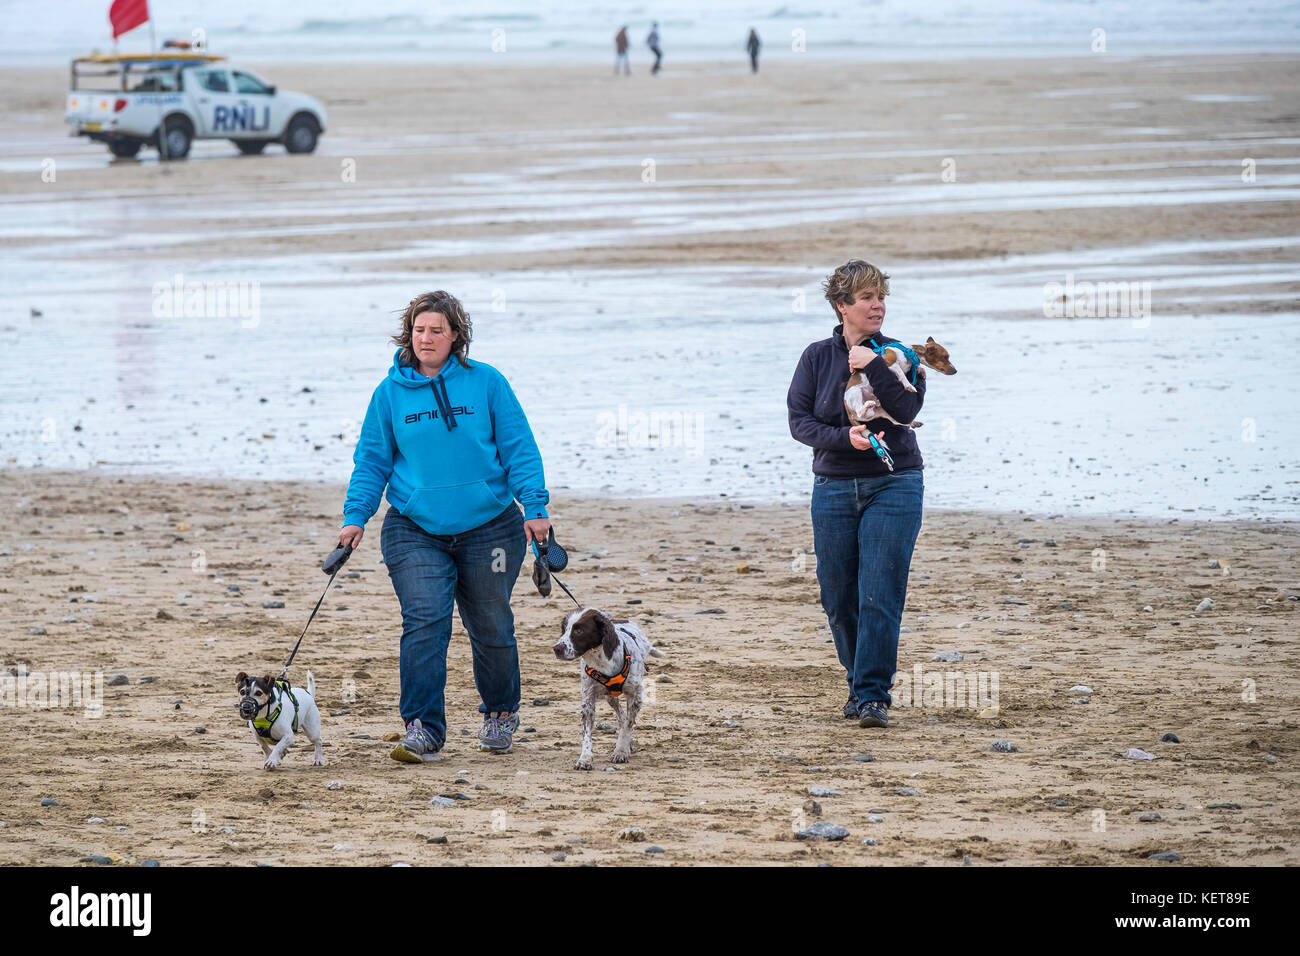 Dog walking - two women walking their small dogs on Fistral Beach Newquay. - Stock Image